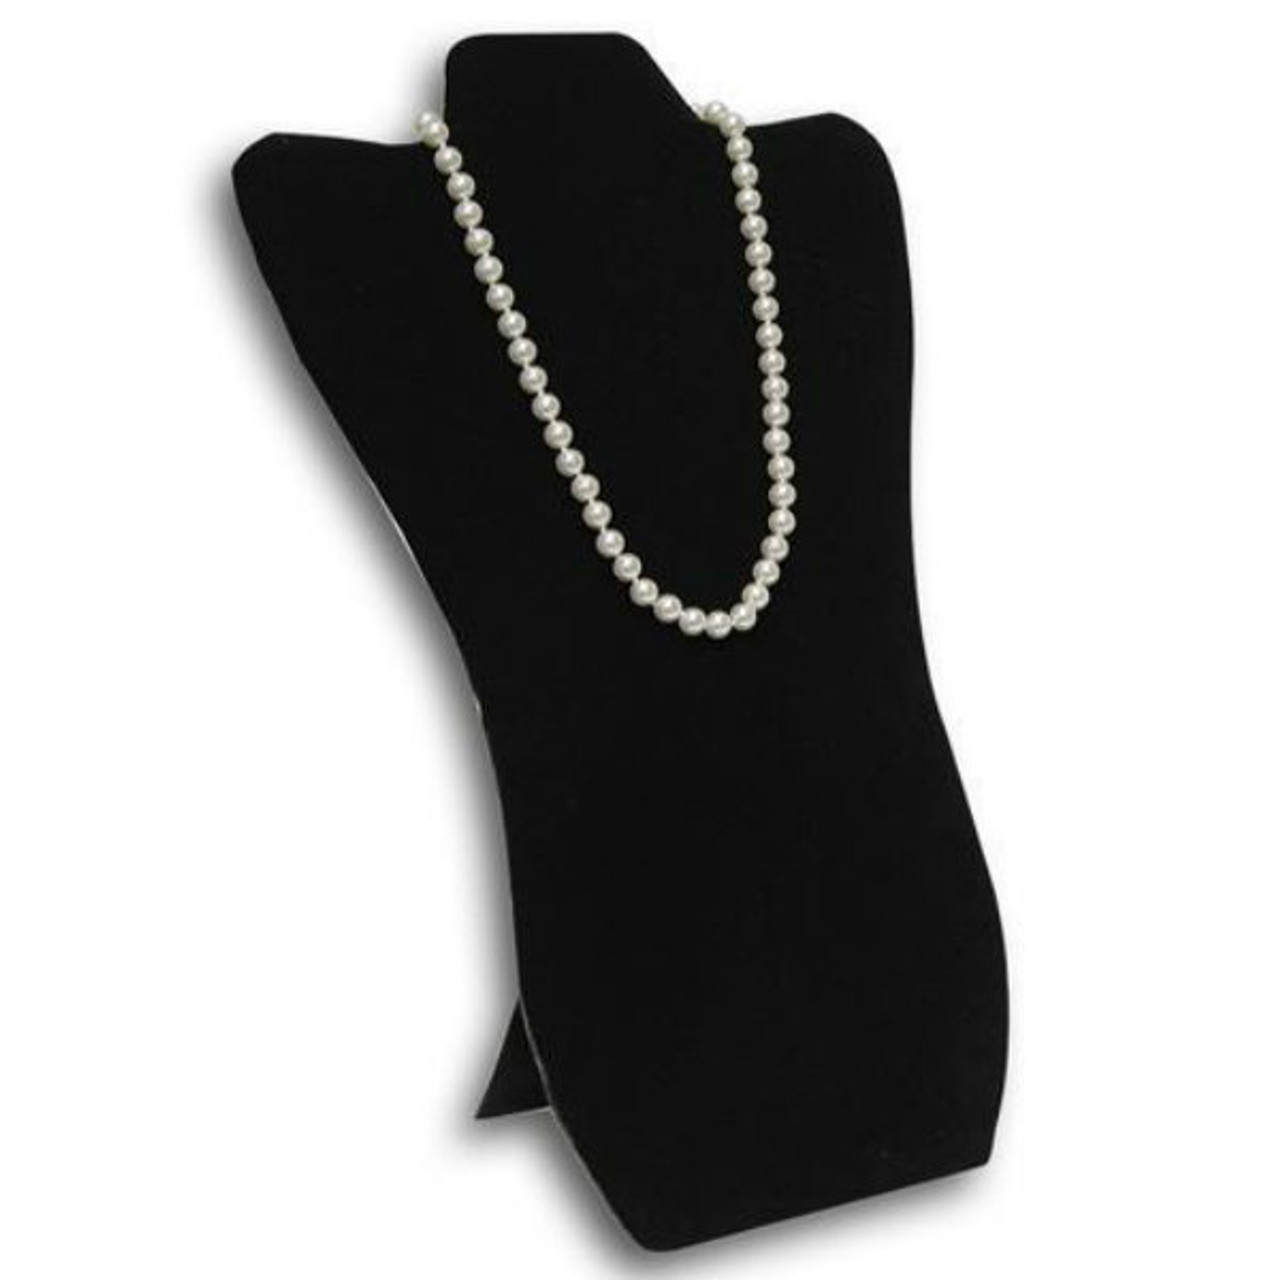 Jewellers Wholesale Supplies Jewellery Boxes & Supplies Black Velvet Jewellery Necklace Chain Display Bust Jewellery & Watches